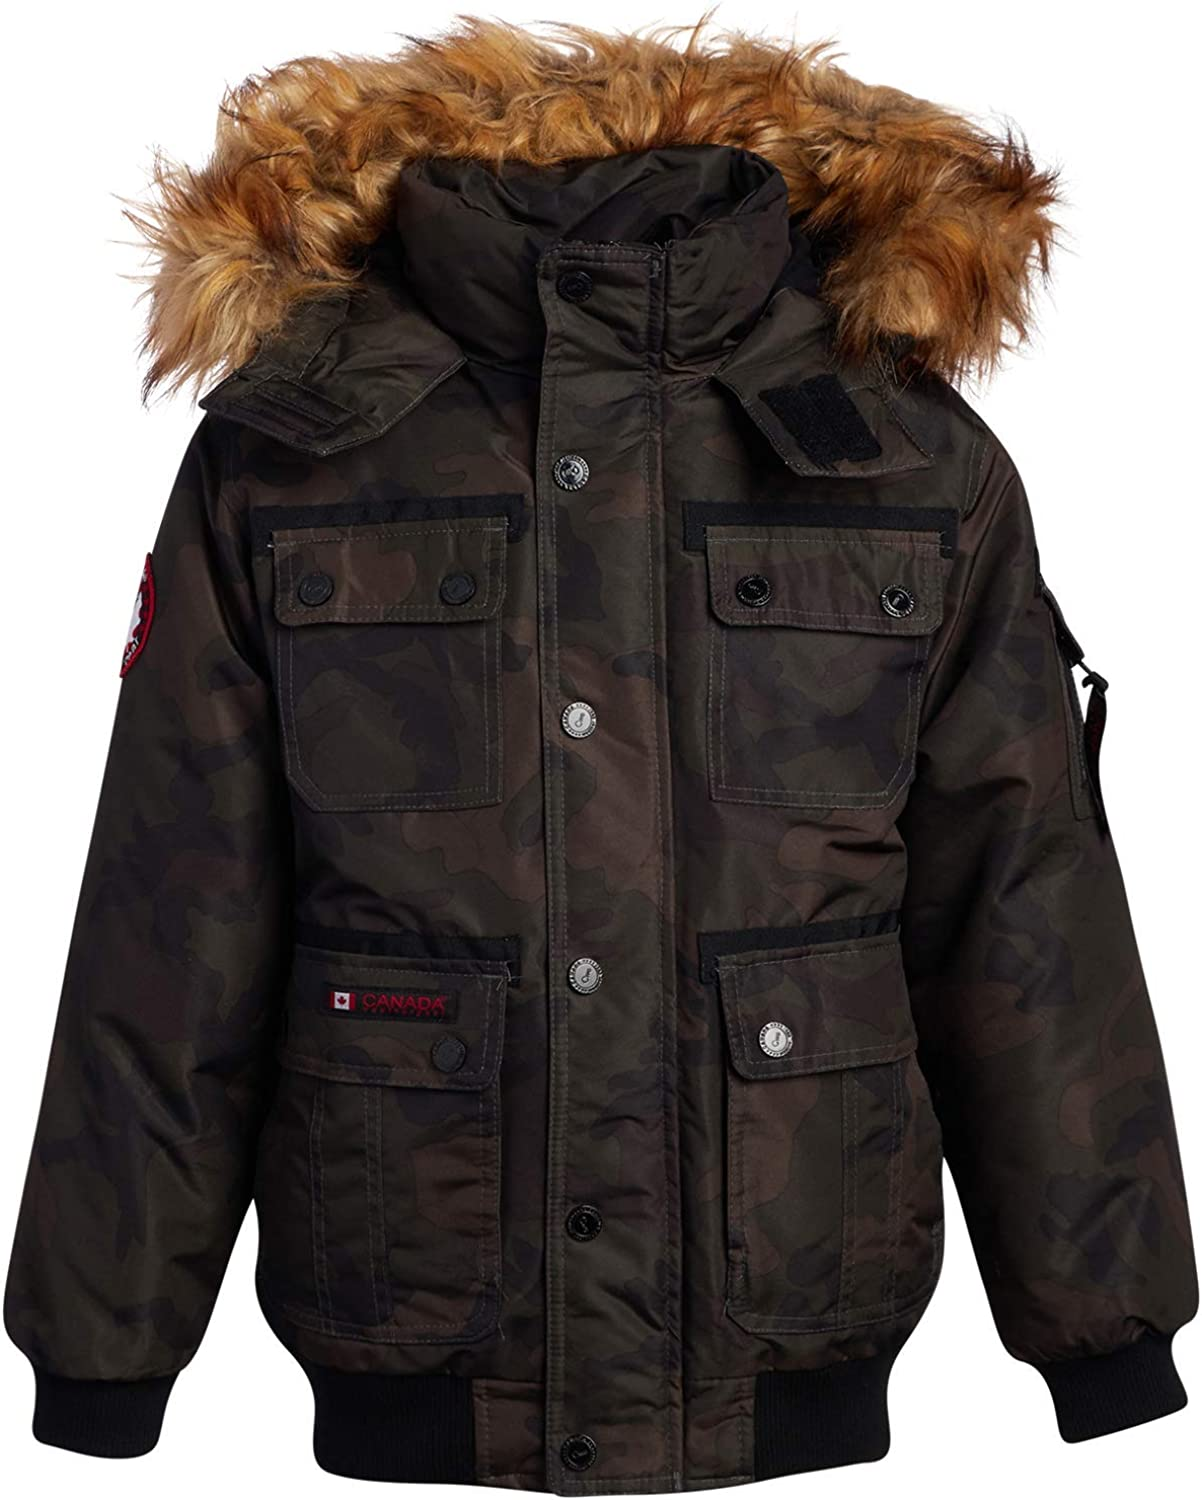 CANADA WEATHER GEAR Boys Complete Free Shipping Heavyweight Fa Popular brand in the world with Parka Jacket Bomber